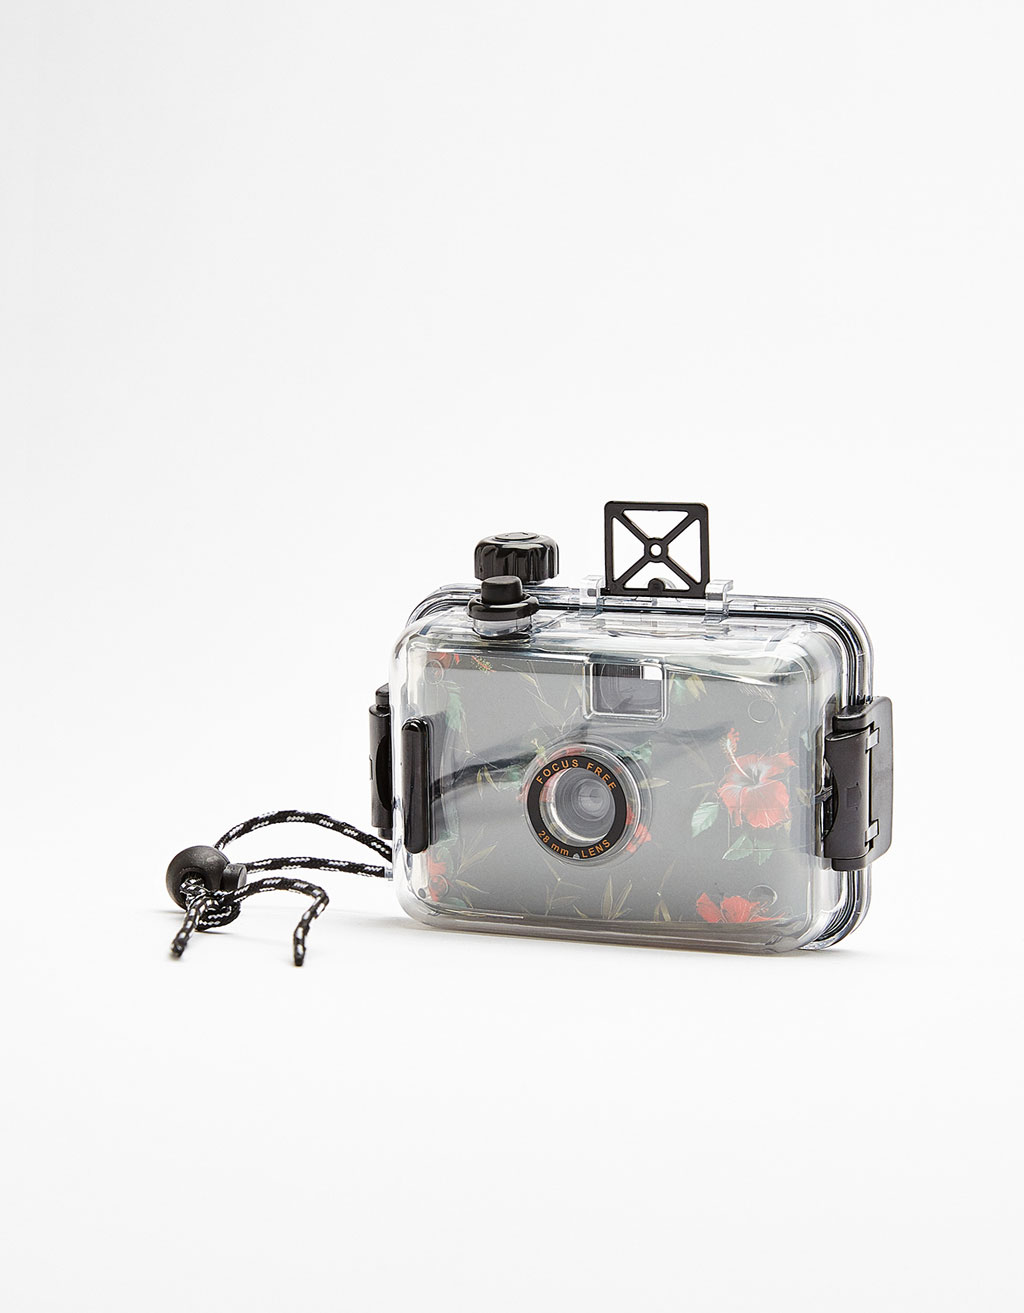 Analogue camera